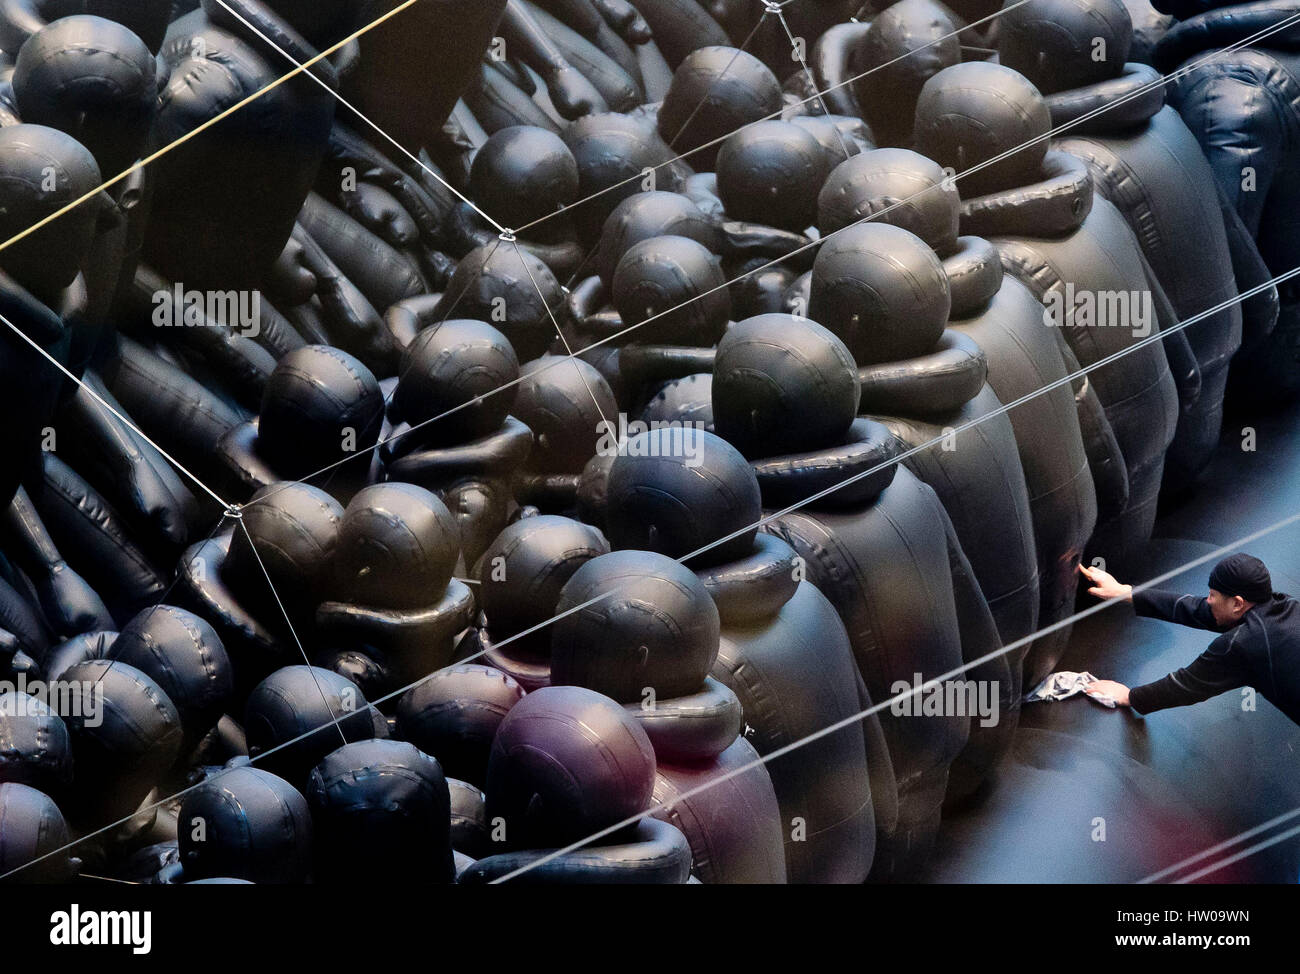 Prague, Czech Republic. 15th March 2017. Chinese conceptual artist and political activist Ai Weiwei, 59, has prepared - Stock Image